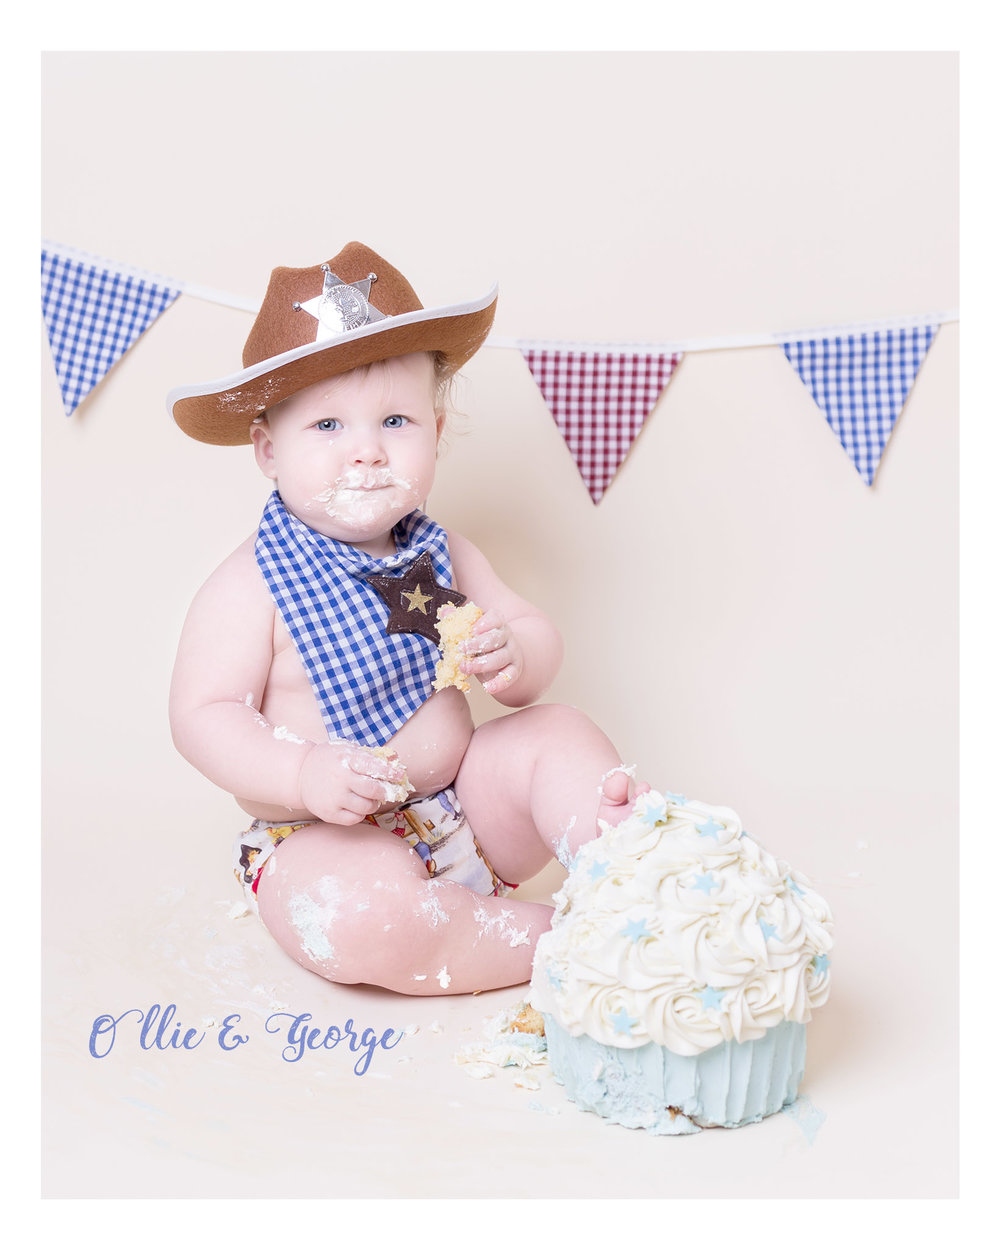 Cake smash baby photo shoot at Ollie & George Photography Blackburn Lancahsire. Cowboy themed with blue cake